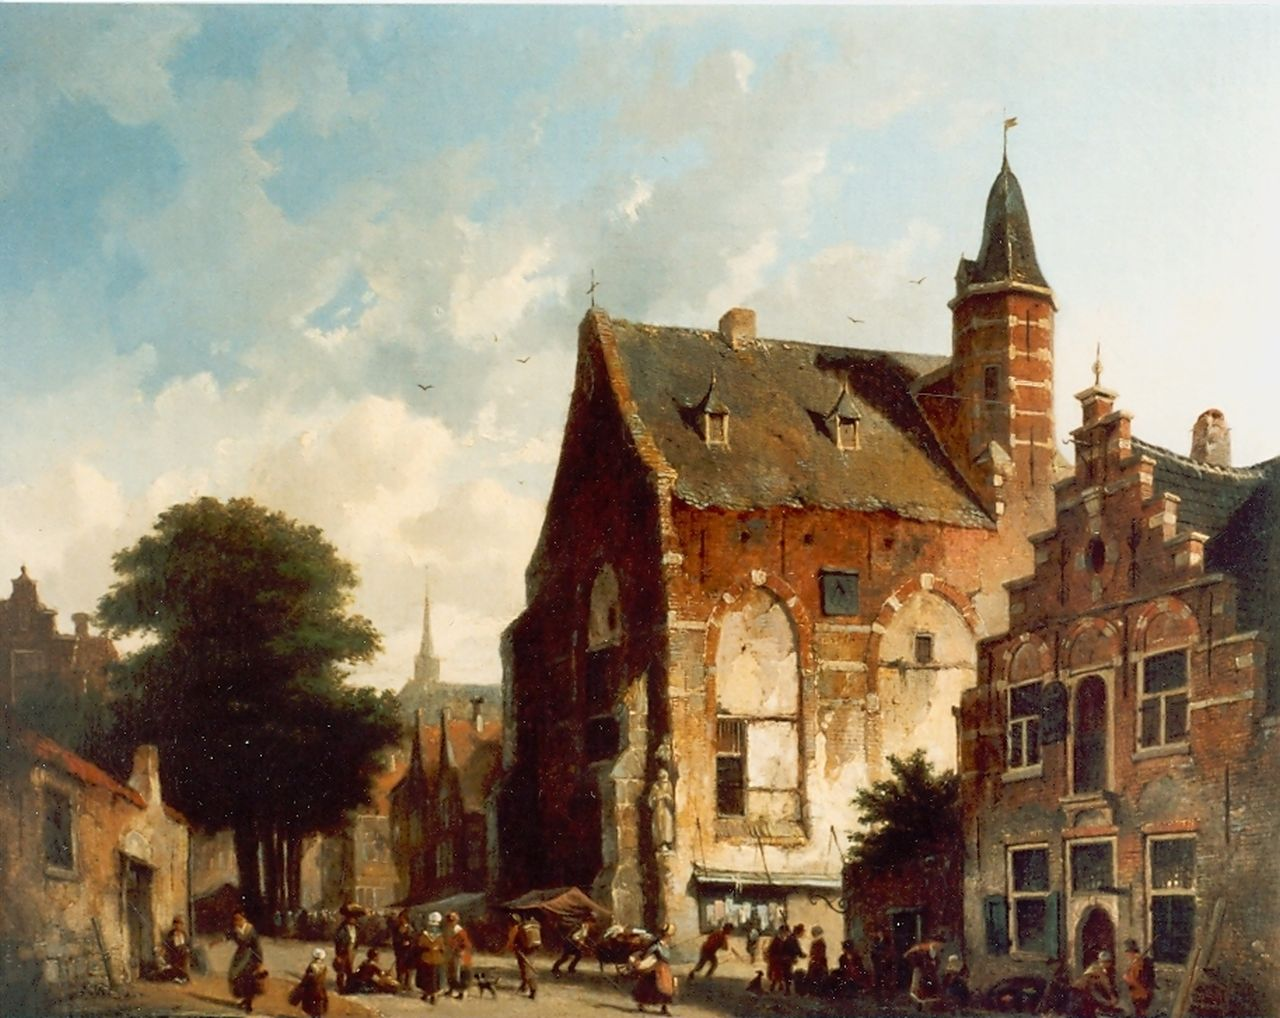 Eversen A.  | Adrianus Eversen, A town view with figures, oil on canvas 43.5 x 51.0 cm, signed l.r.